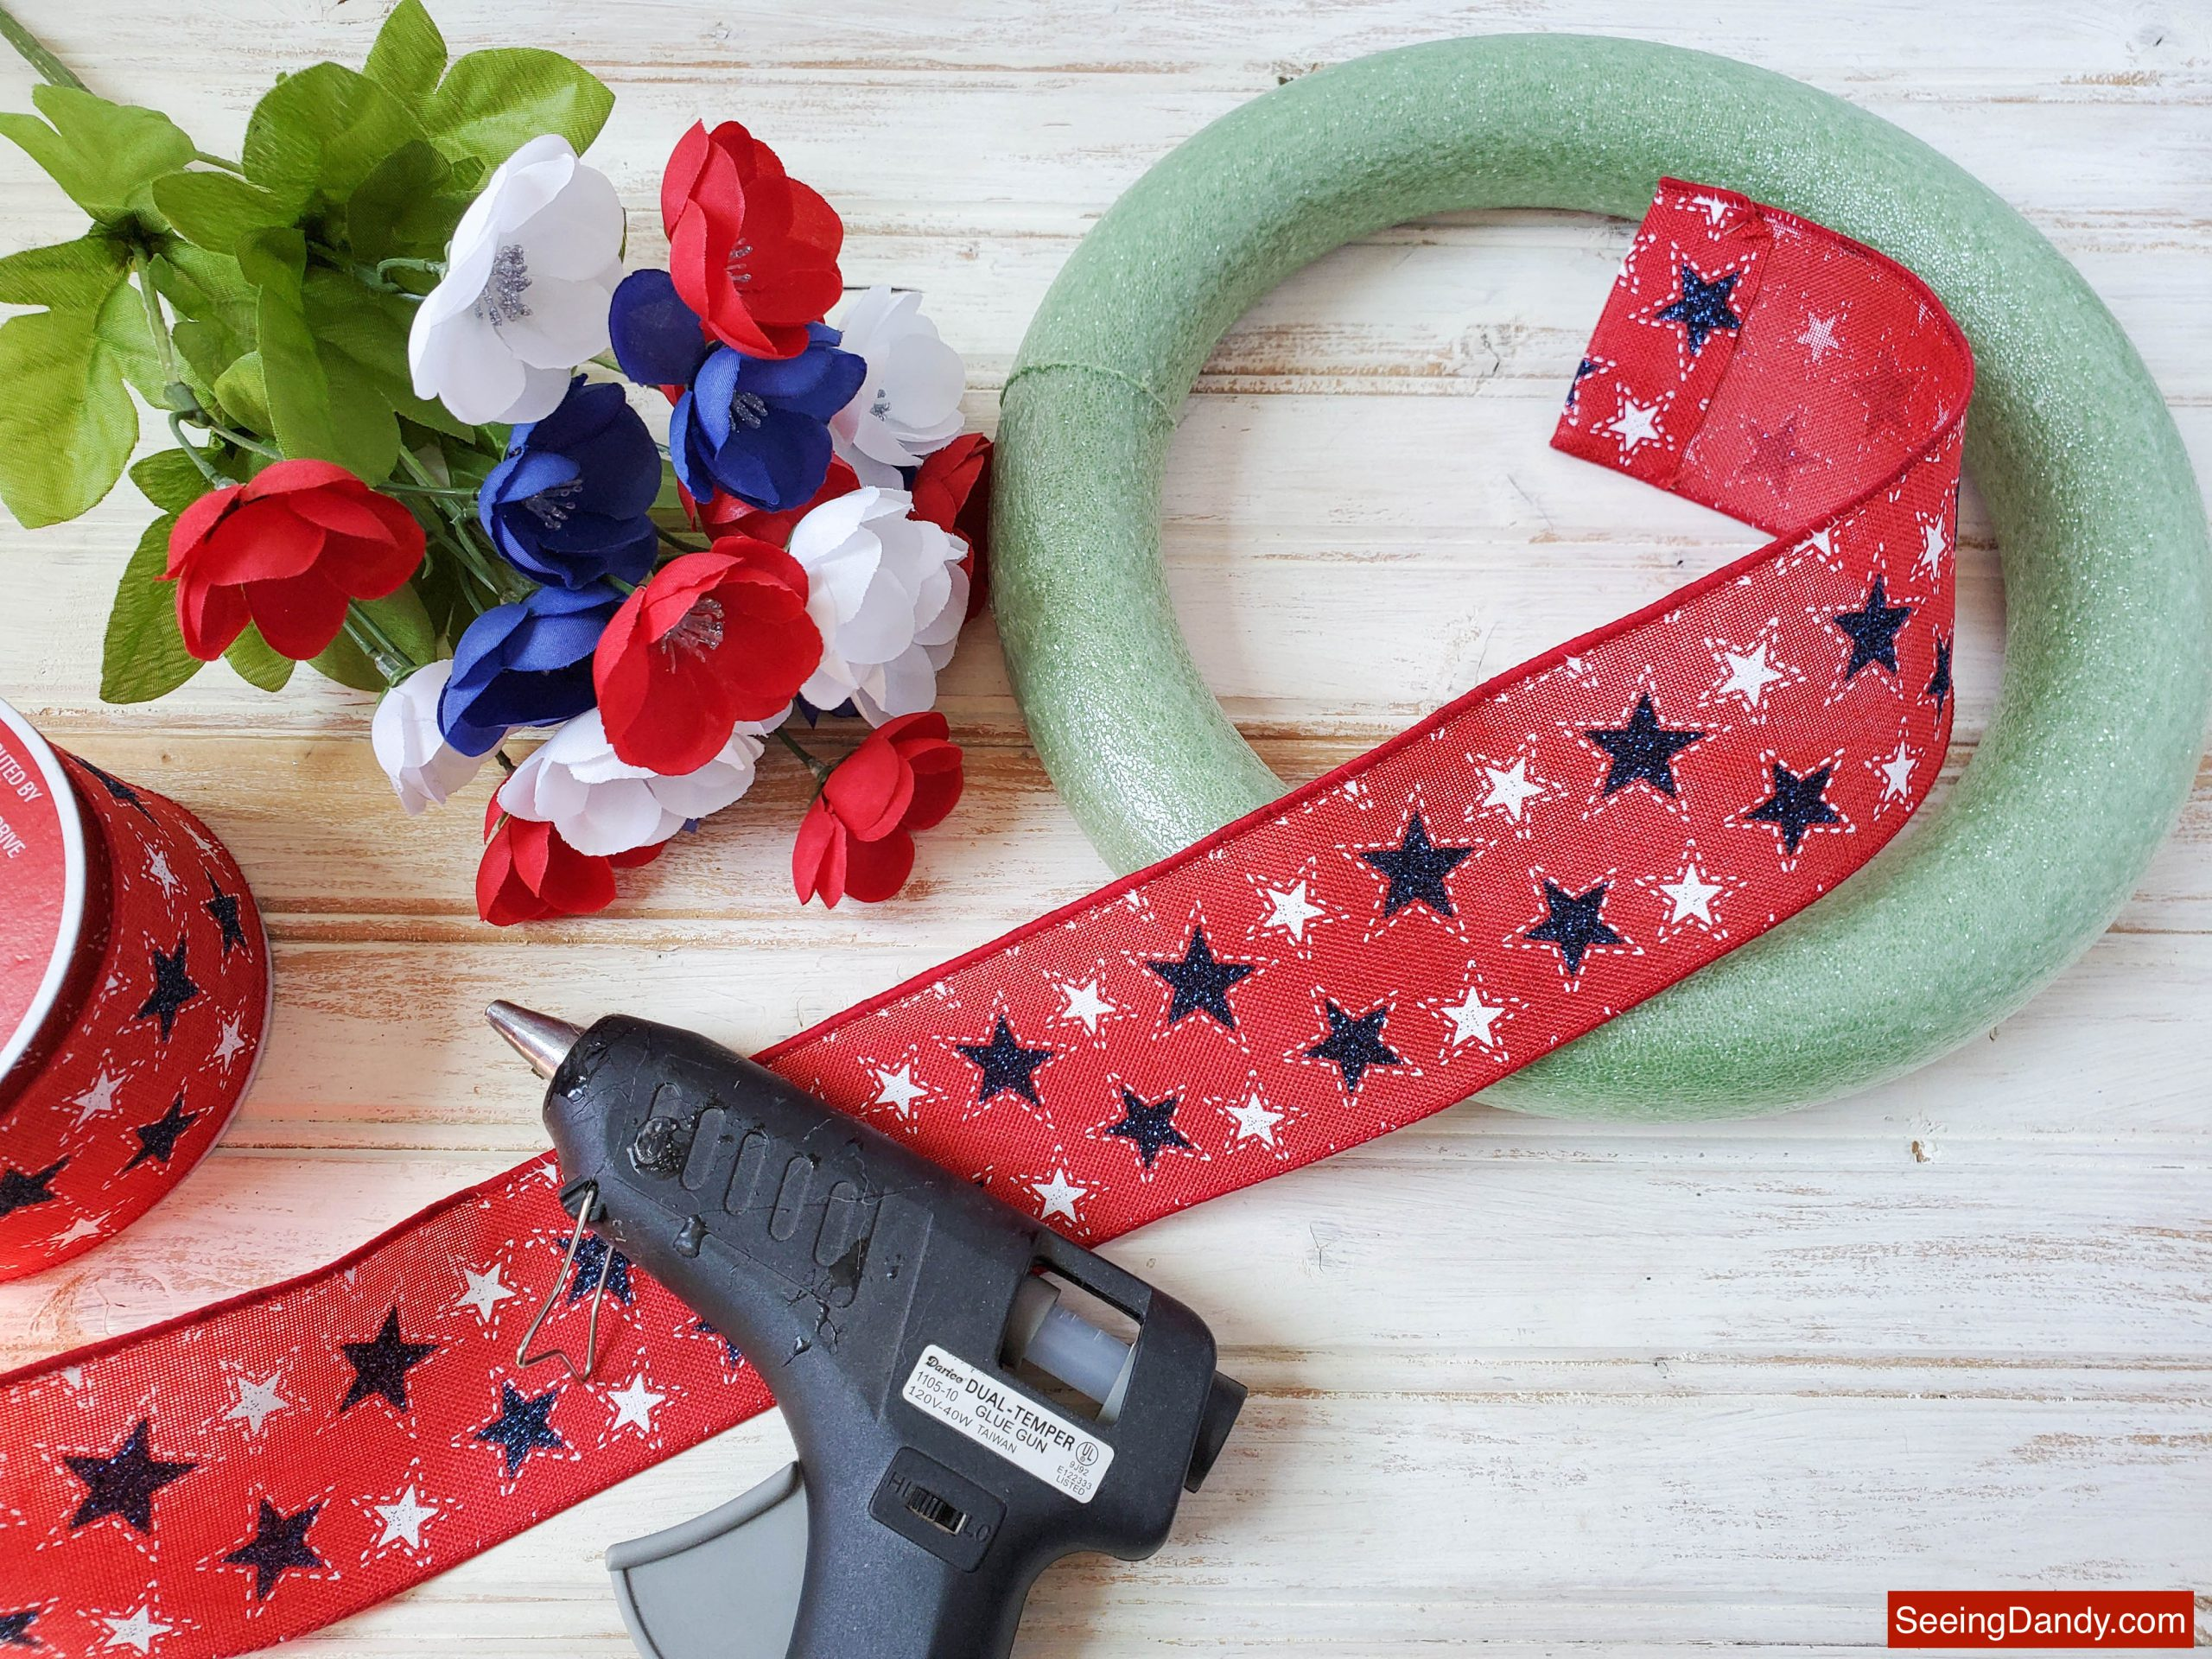 diy wreath supplies, red white blue star ribbon, patriotic poppy flowers, glue gun, green foam wreath